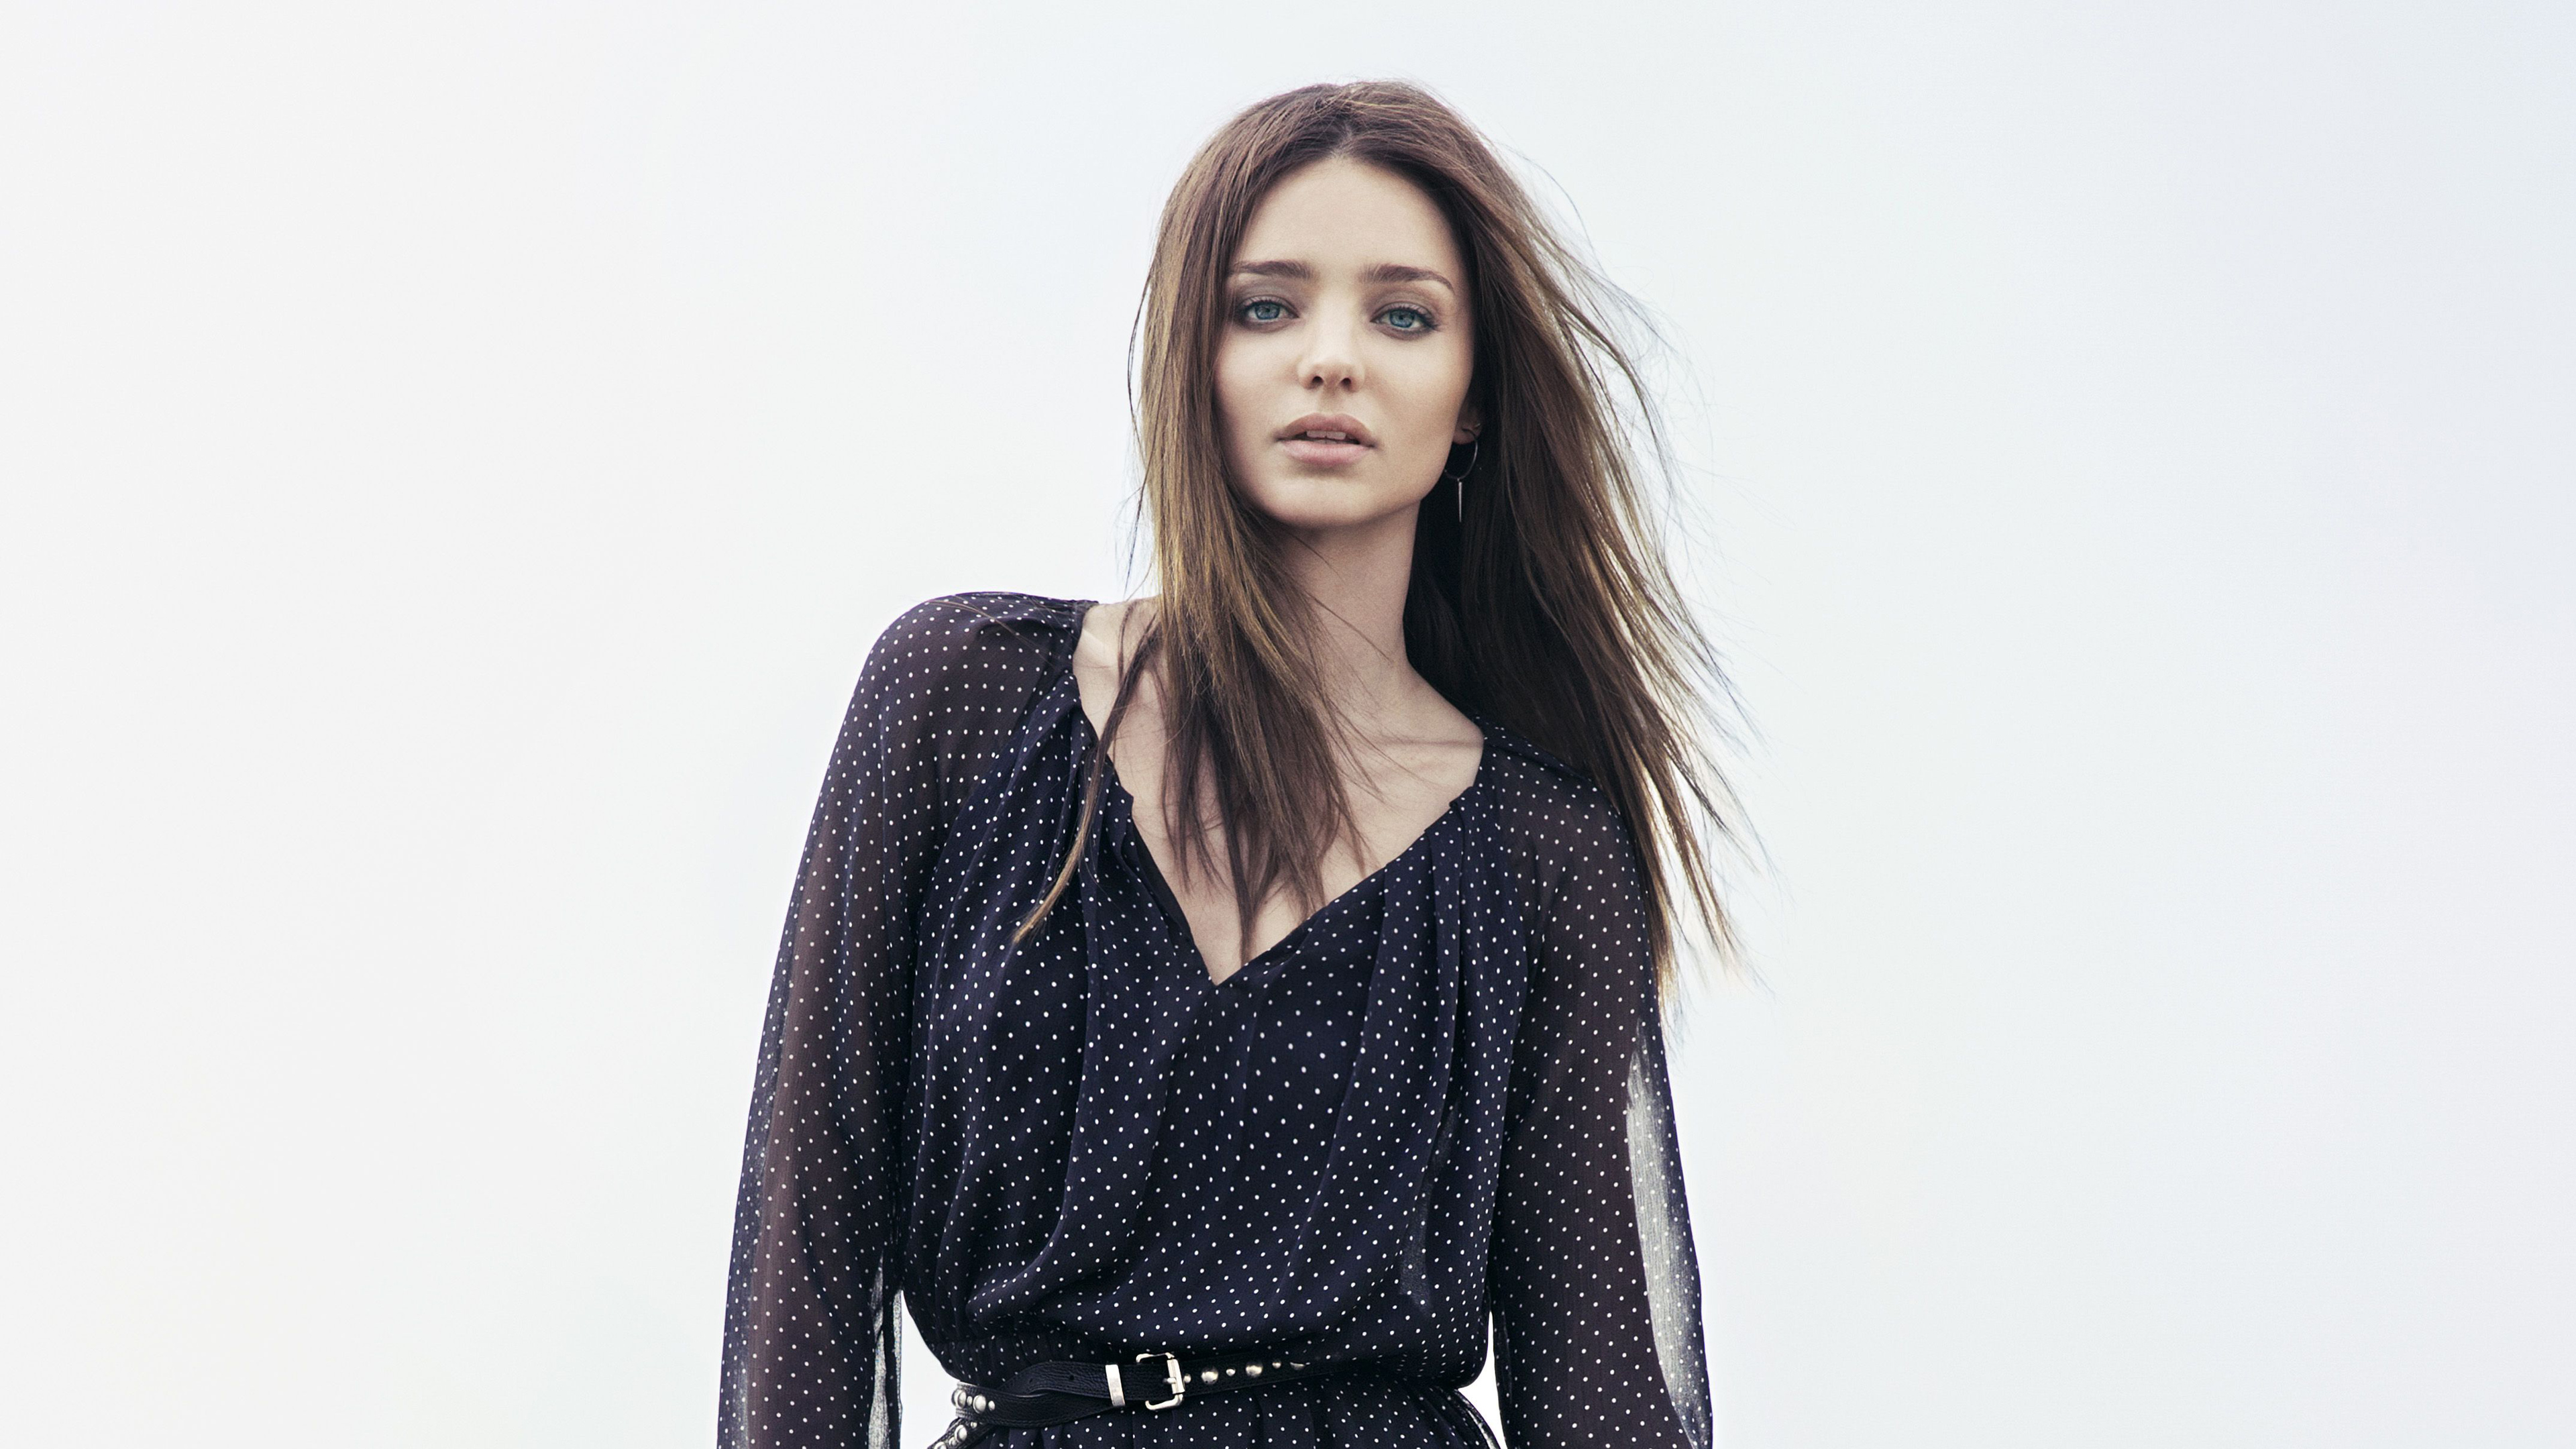 miranda kerr 2019 4k 1558220754 - Miranda Kerr 2019 4k - model wallpapers, miranda kerr wallpapers, hd-wallpapers, girls wallpapers, celebrities wallpapers, 4k-wallpapers